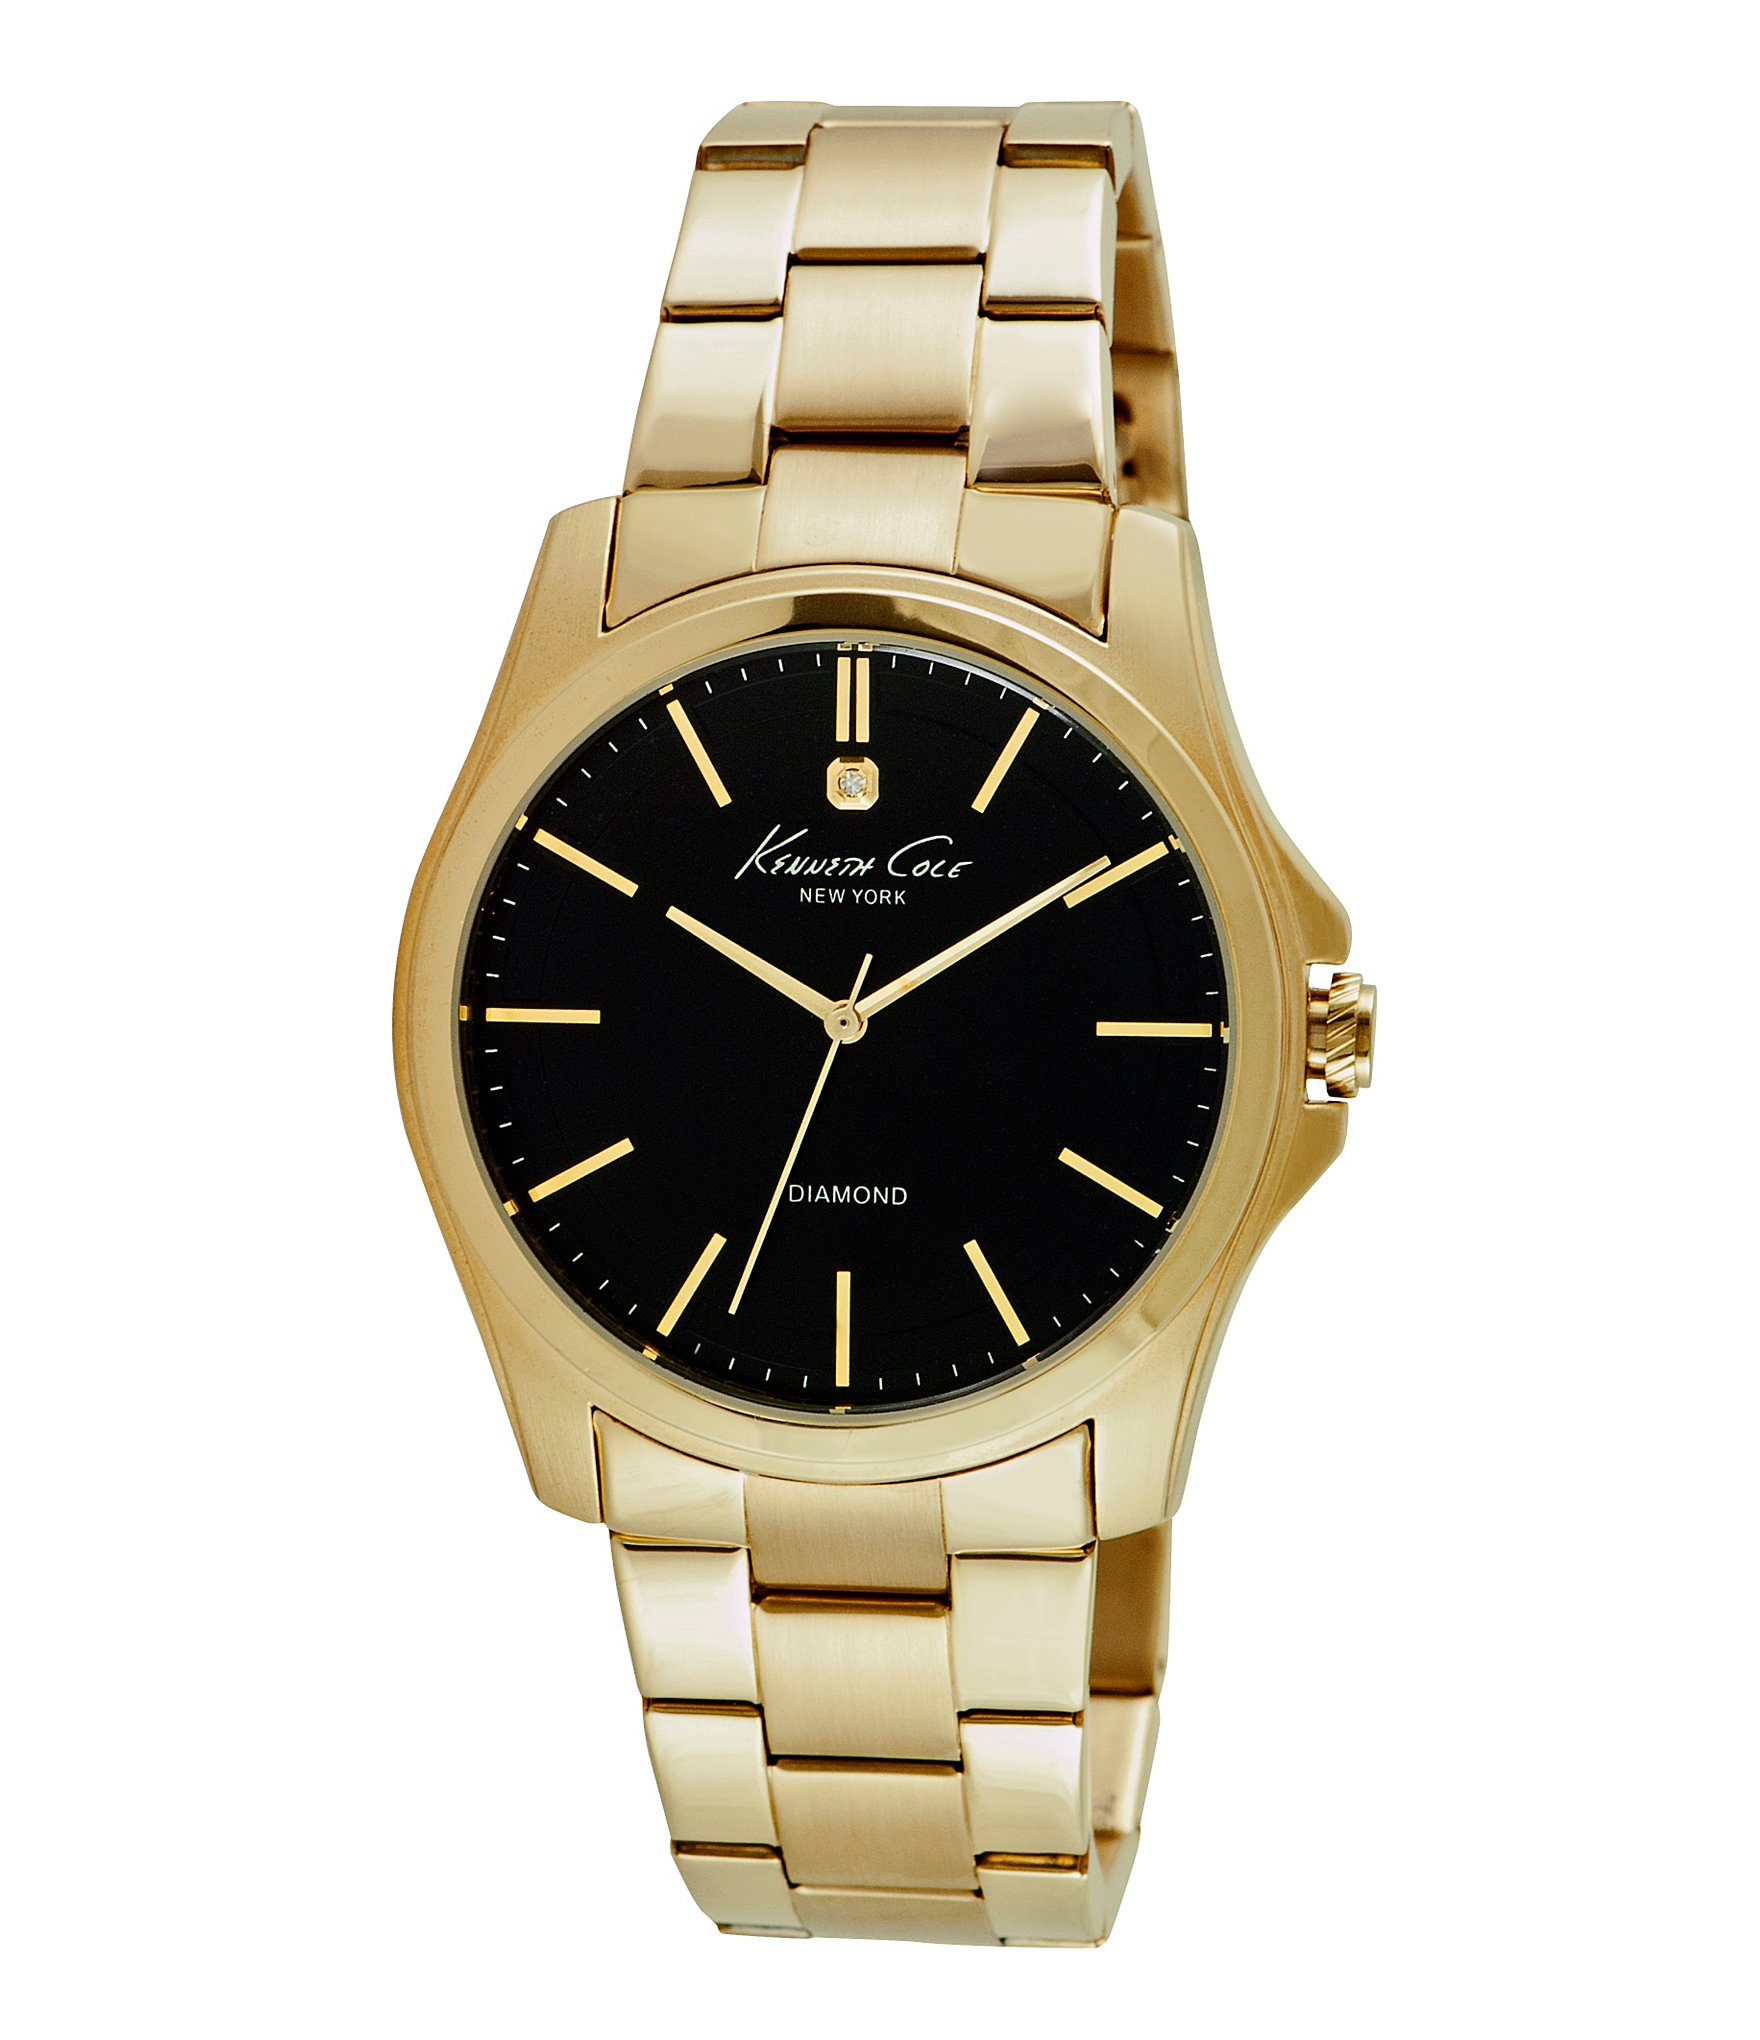 kenneth cole new york 180 s hamilton goldtone stainless